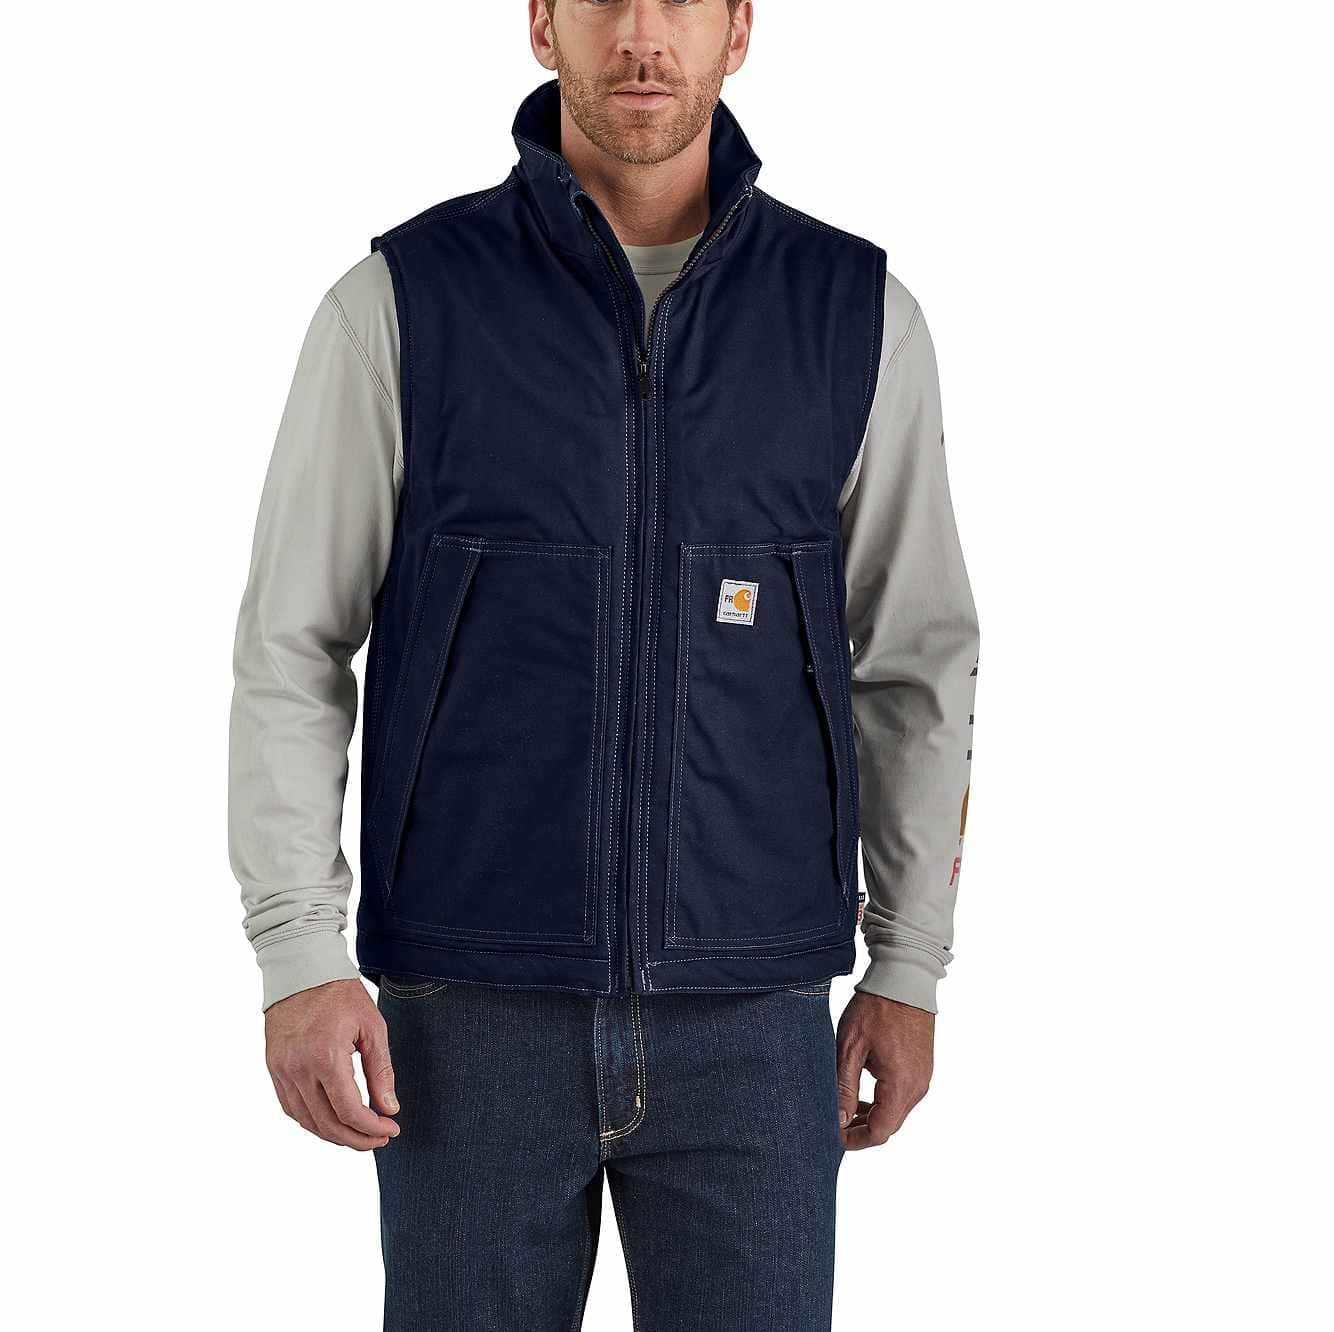 Carhartt Mens Big /& Tall Flame Resistant Quick Duck Vest Work Utility Outerwear